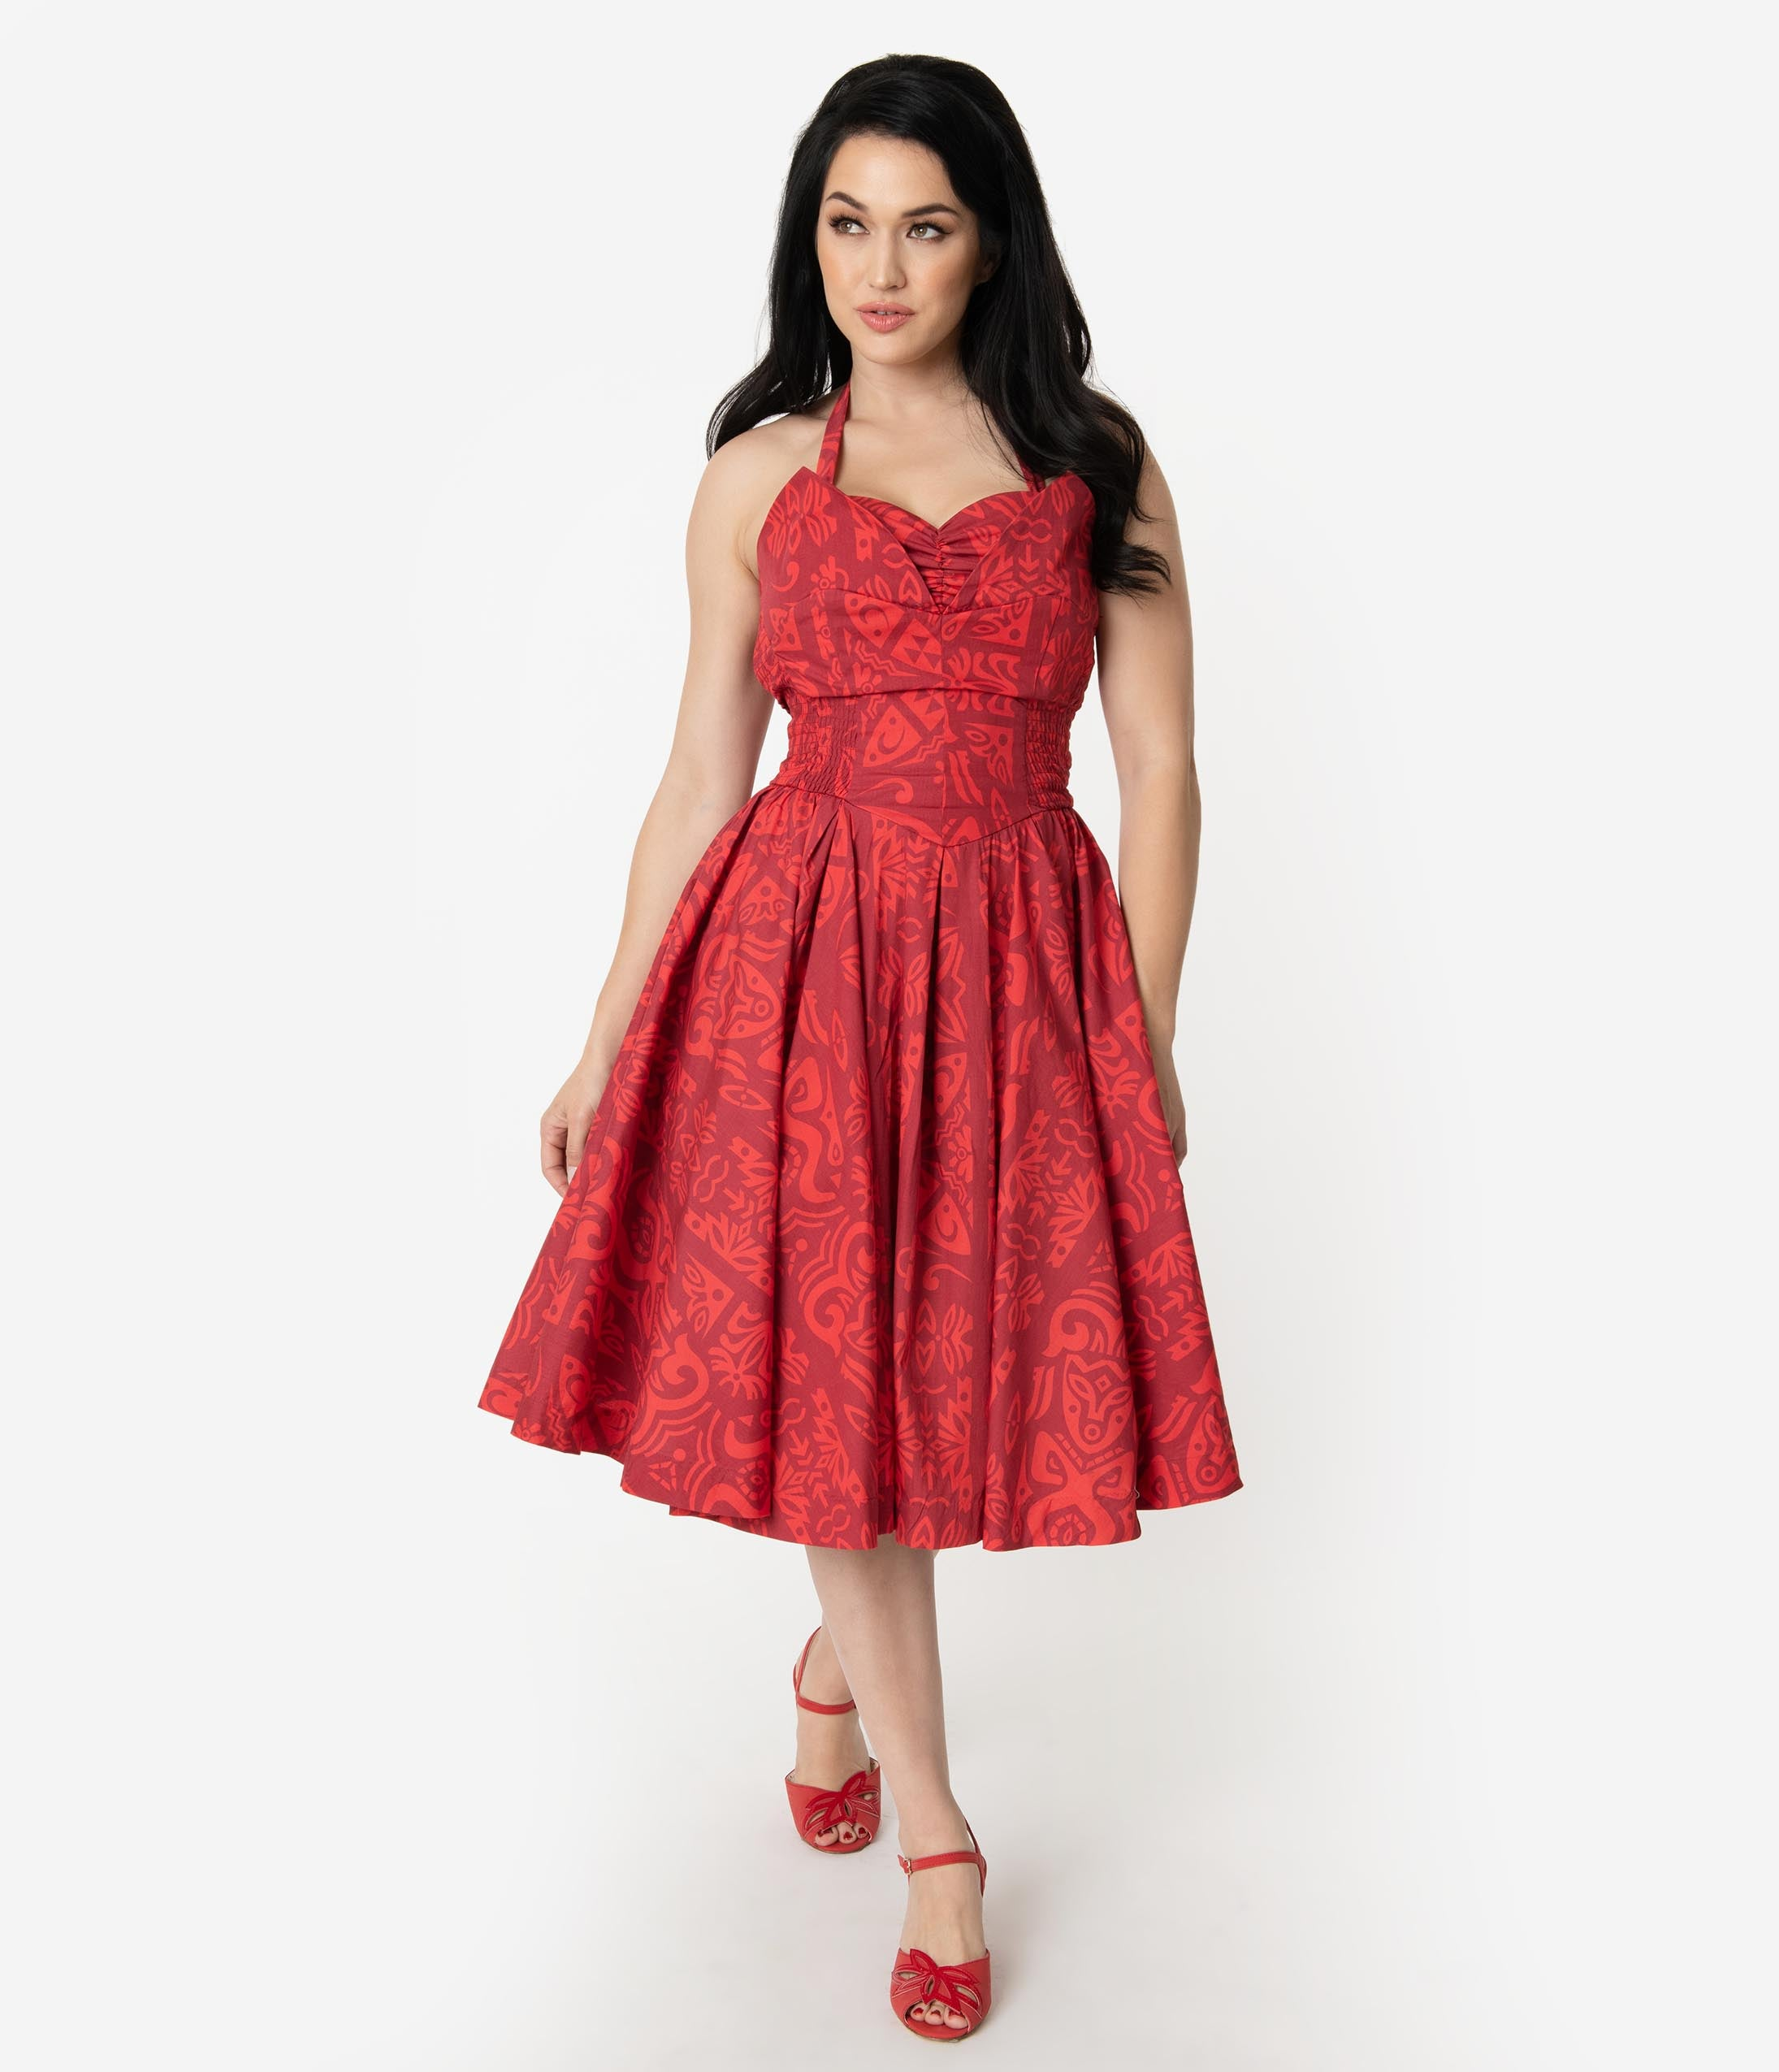 New Fifties Dresses | 50s Inspired Dresses Alfred Shaheen Red Tiki Pareau Print Hawaiian Swing Dress $126.00 AT vintagedancer.com